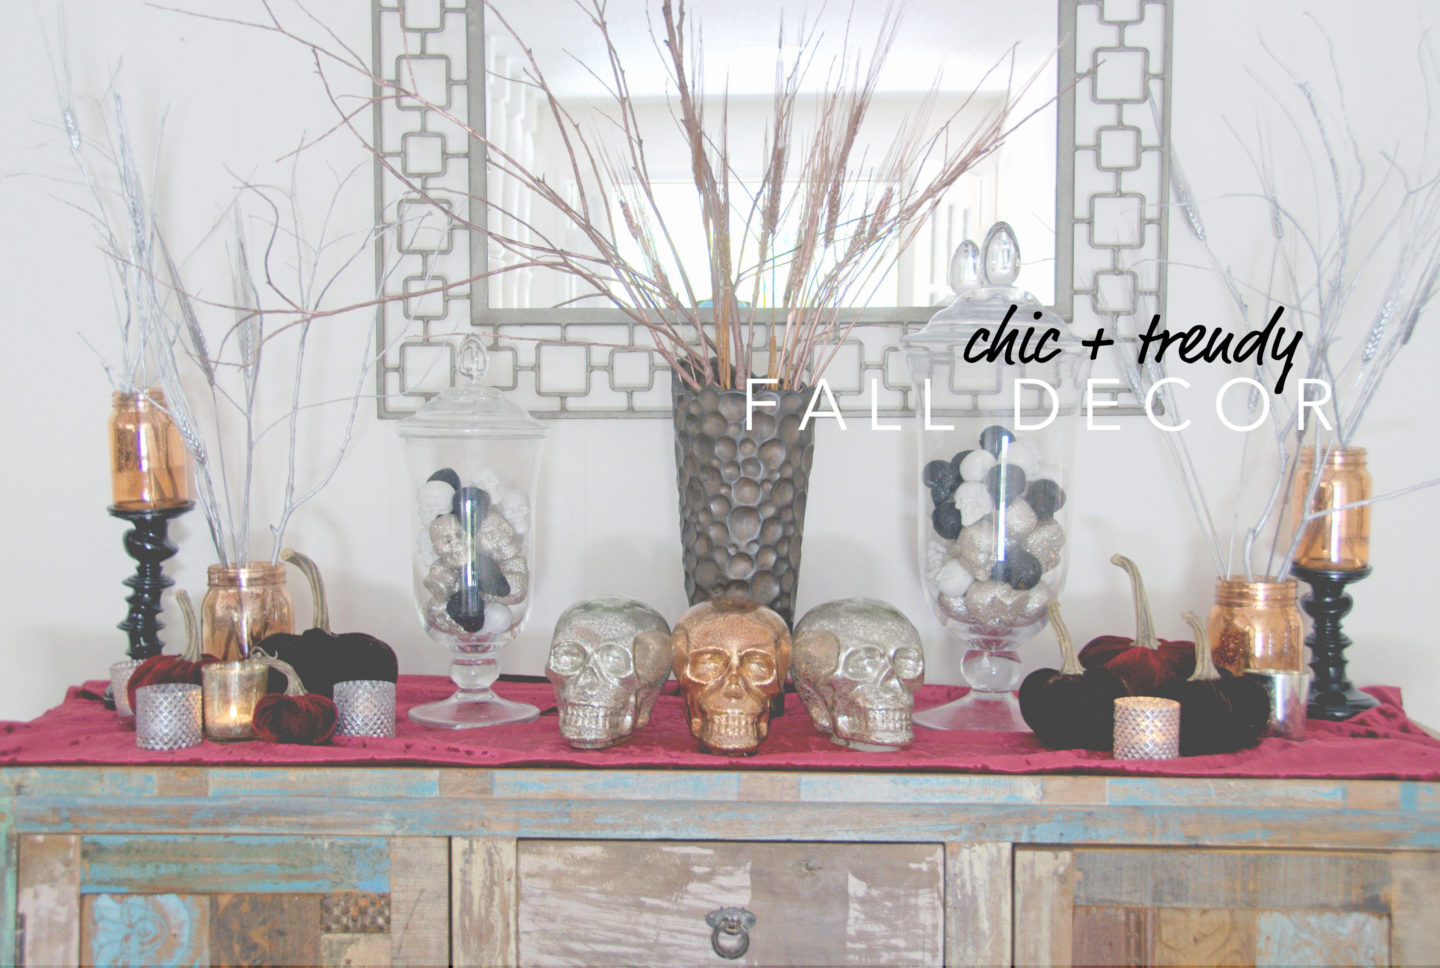 Chic + Trendy Fall Decor on a Budget